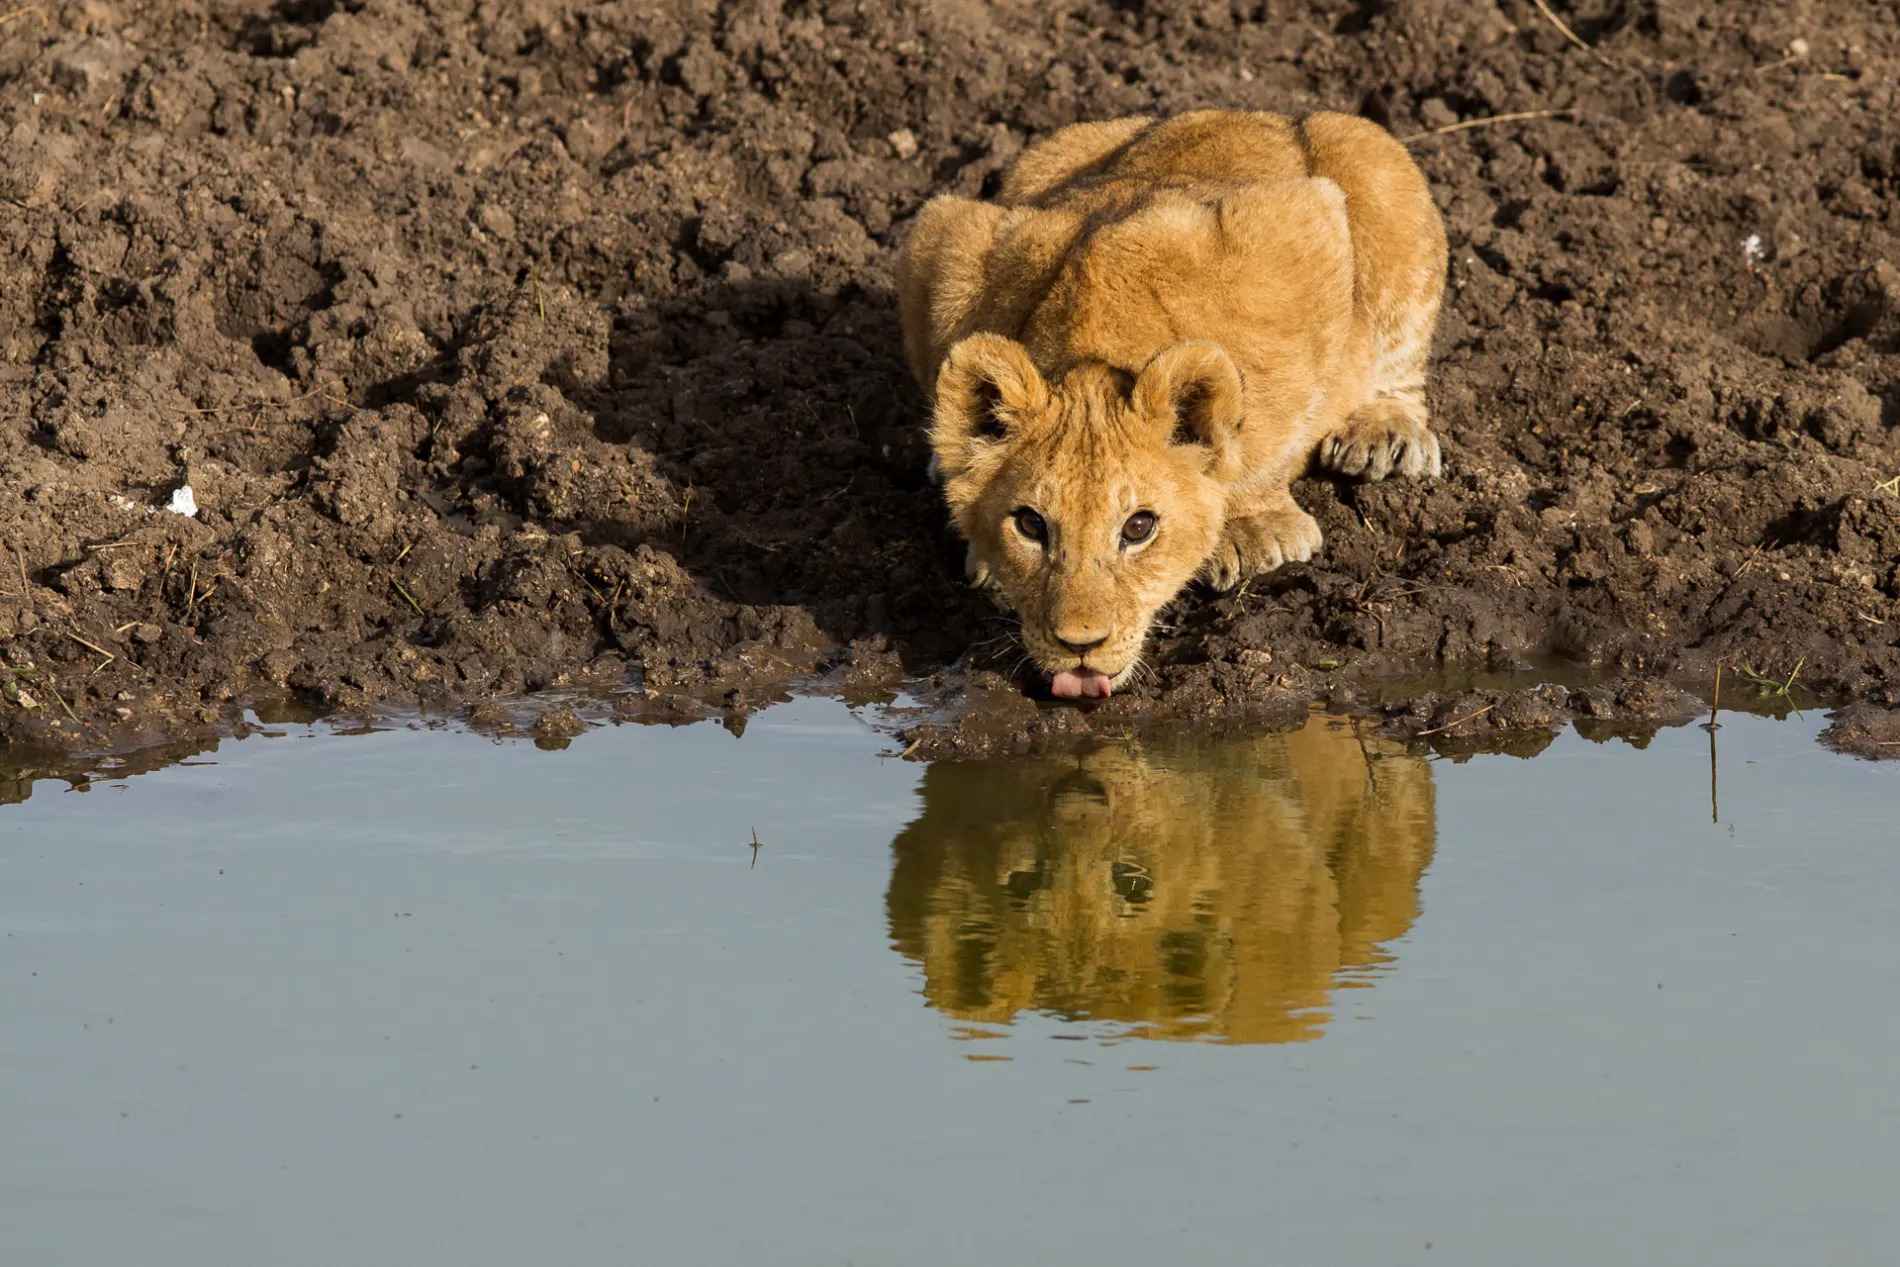 Lion cub and water